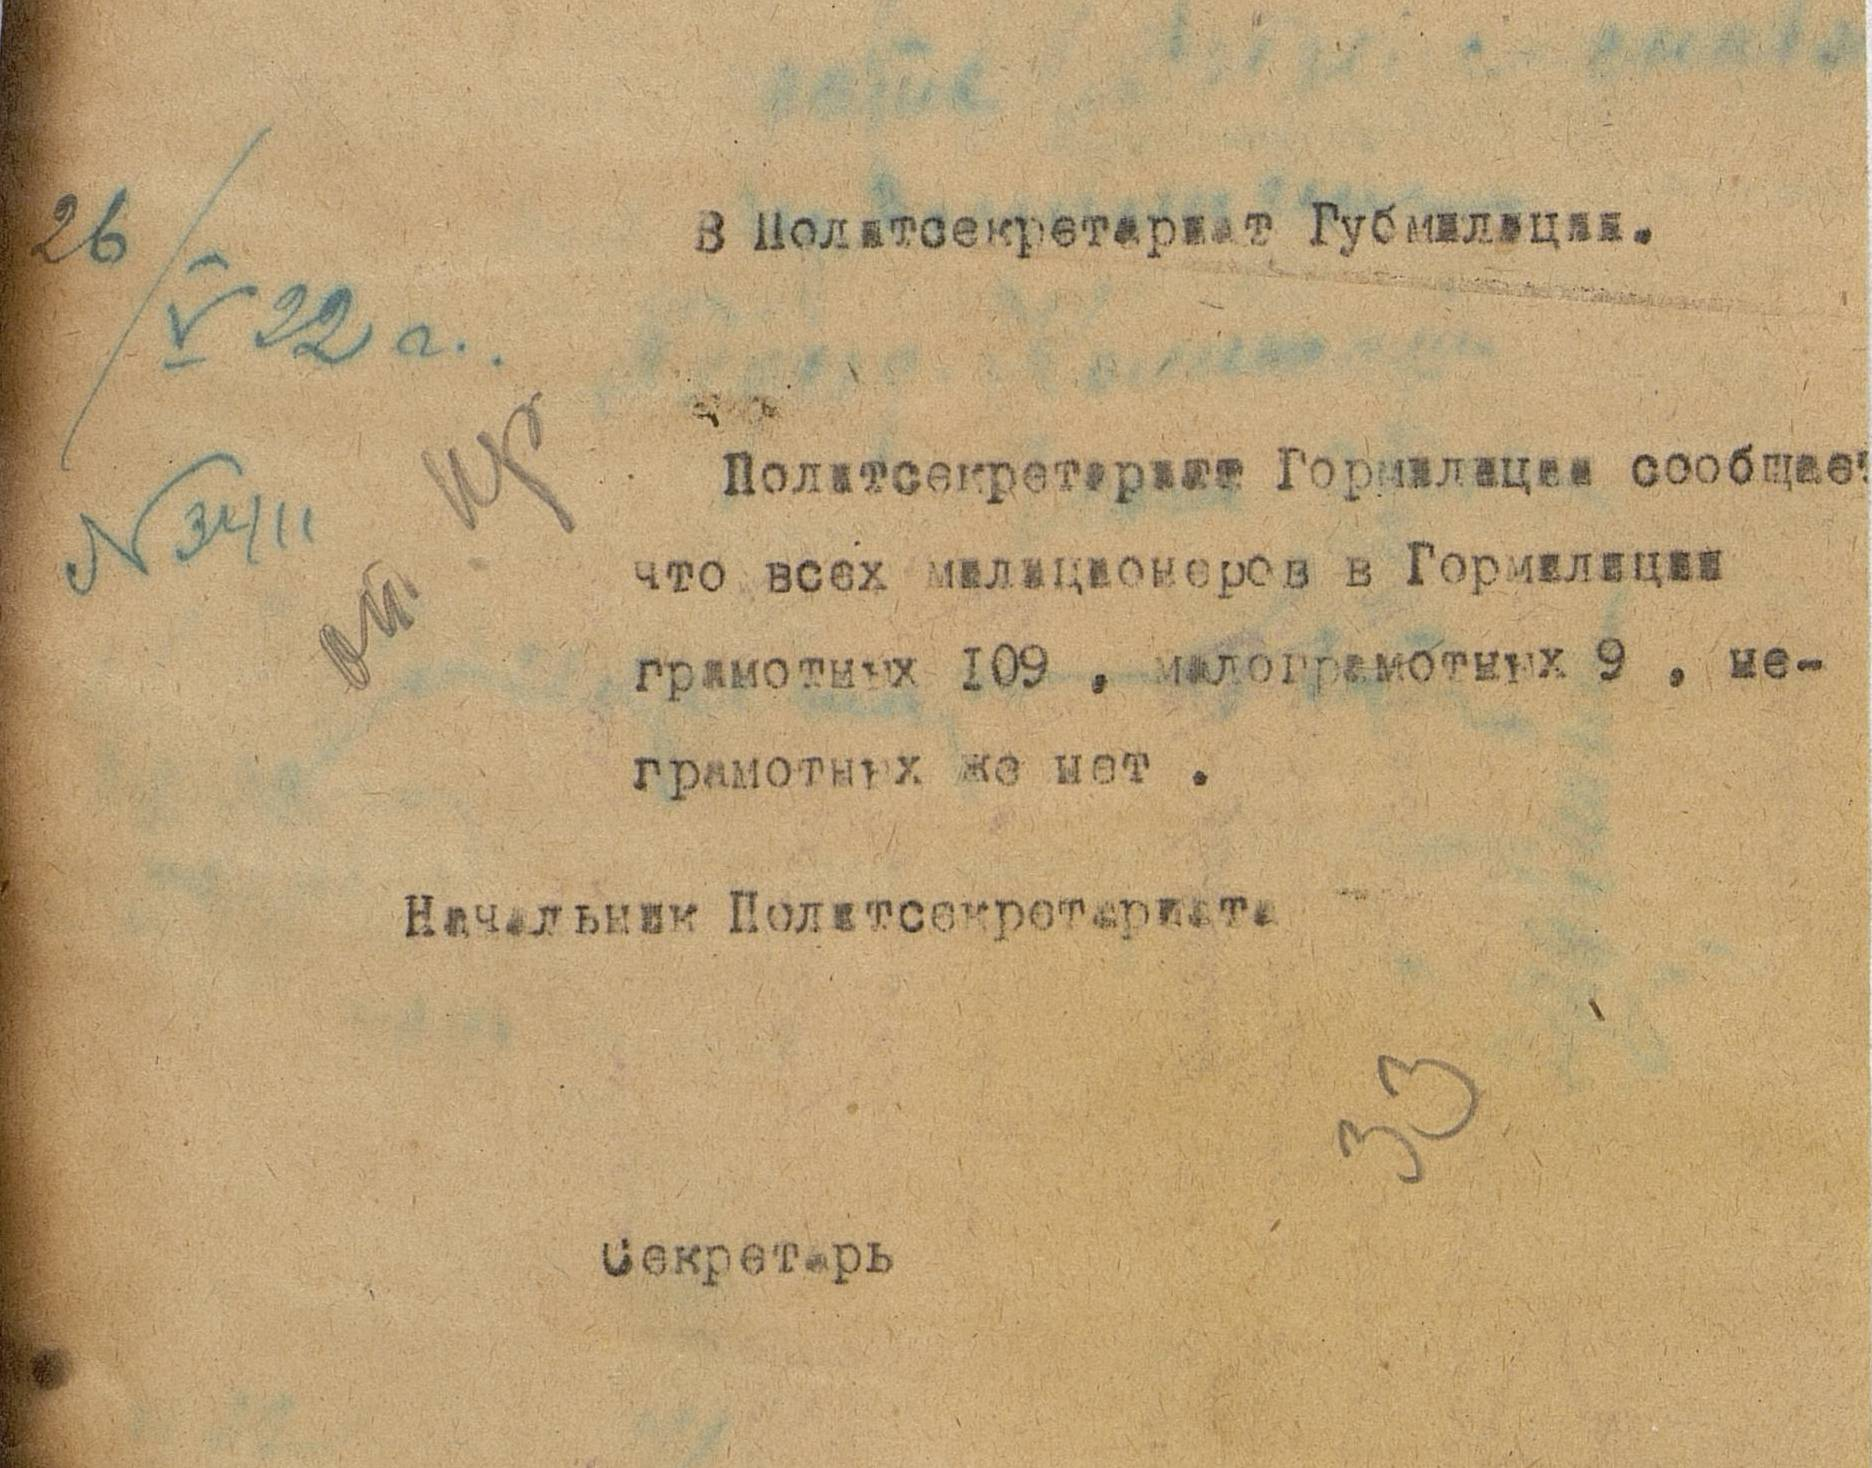 <a href='http://kosarchive.ru/expo51'>ГАКО. Р-423.Оп. 1. Д. 106. Л. 33.</a>